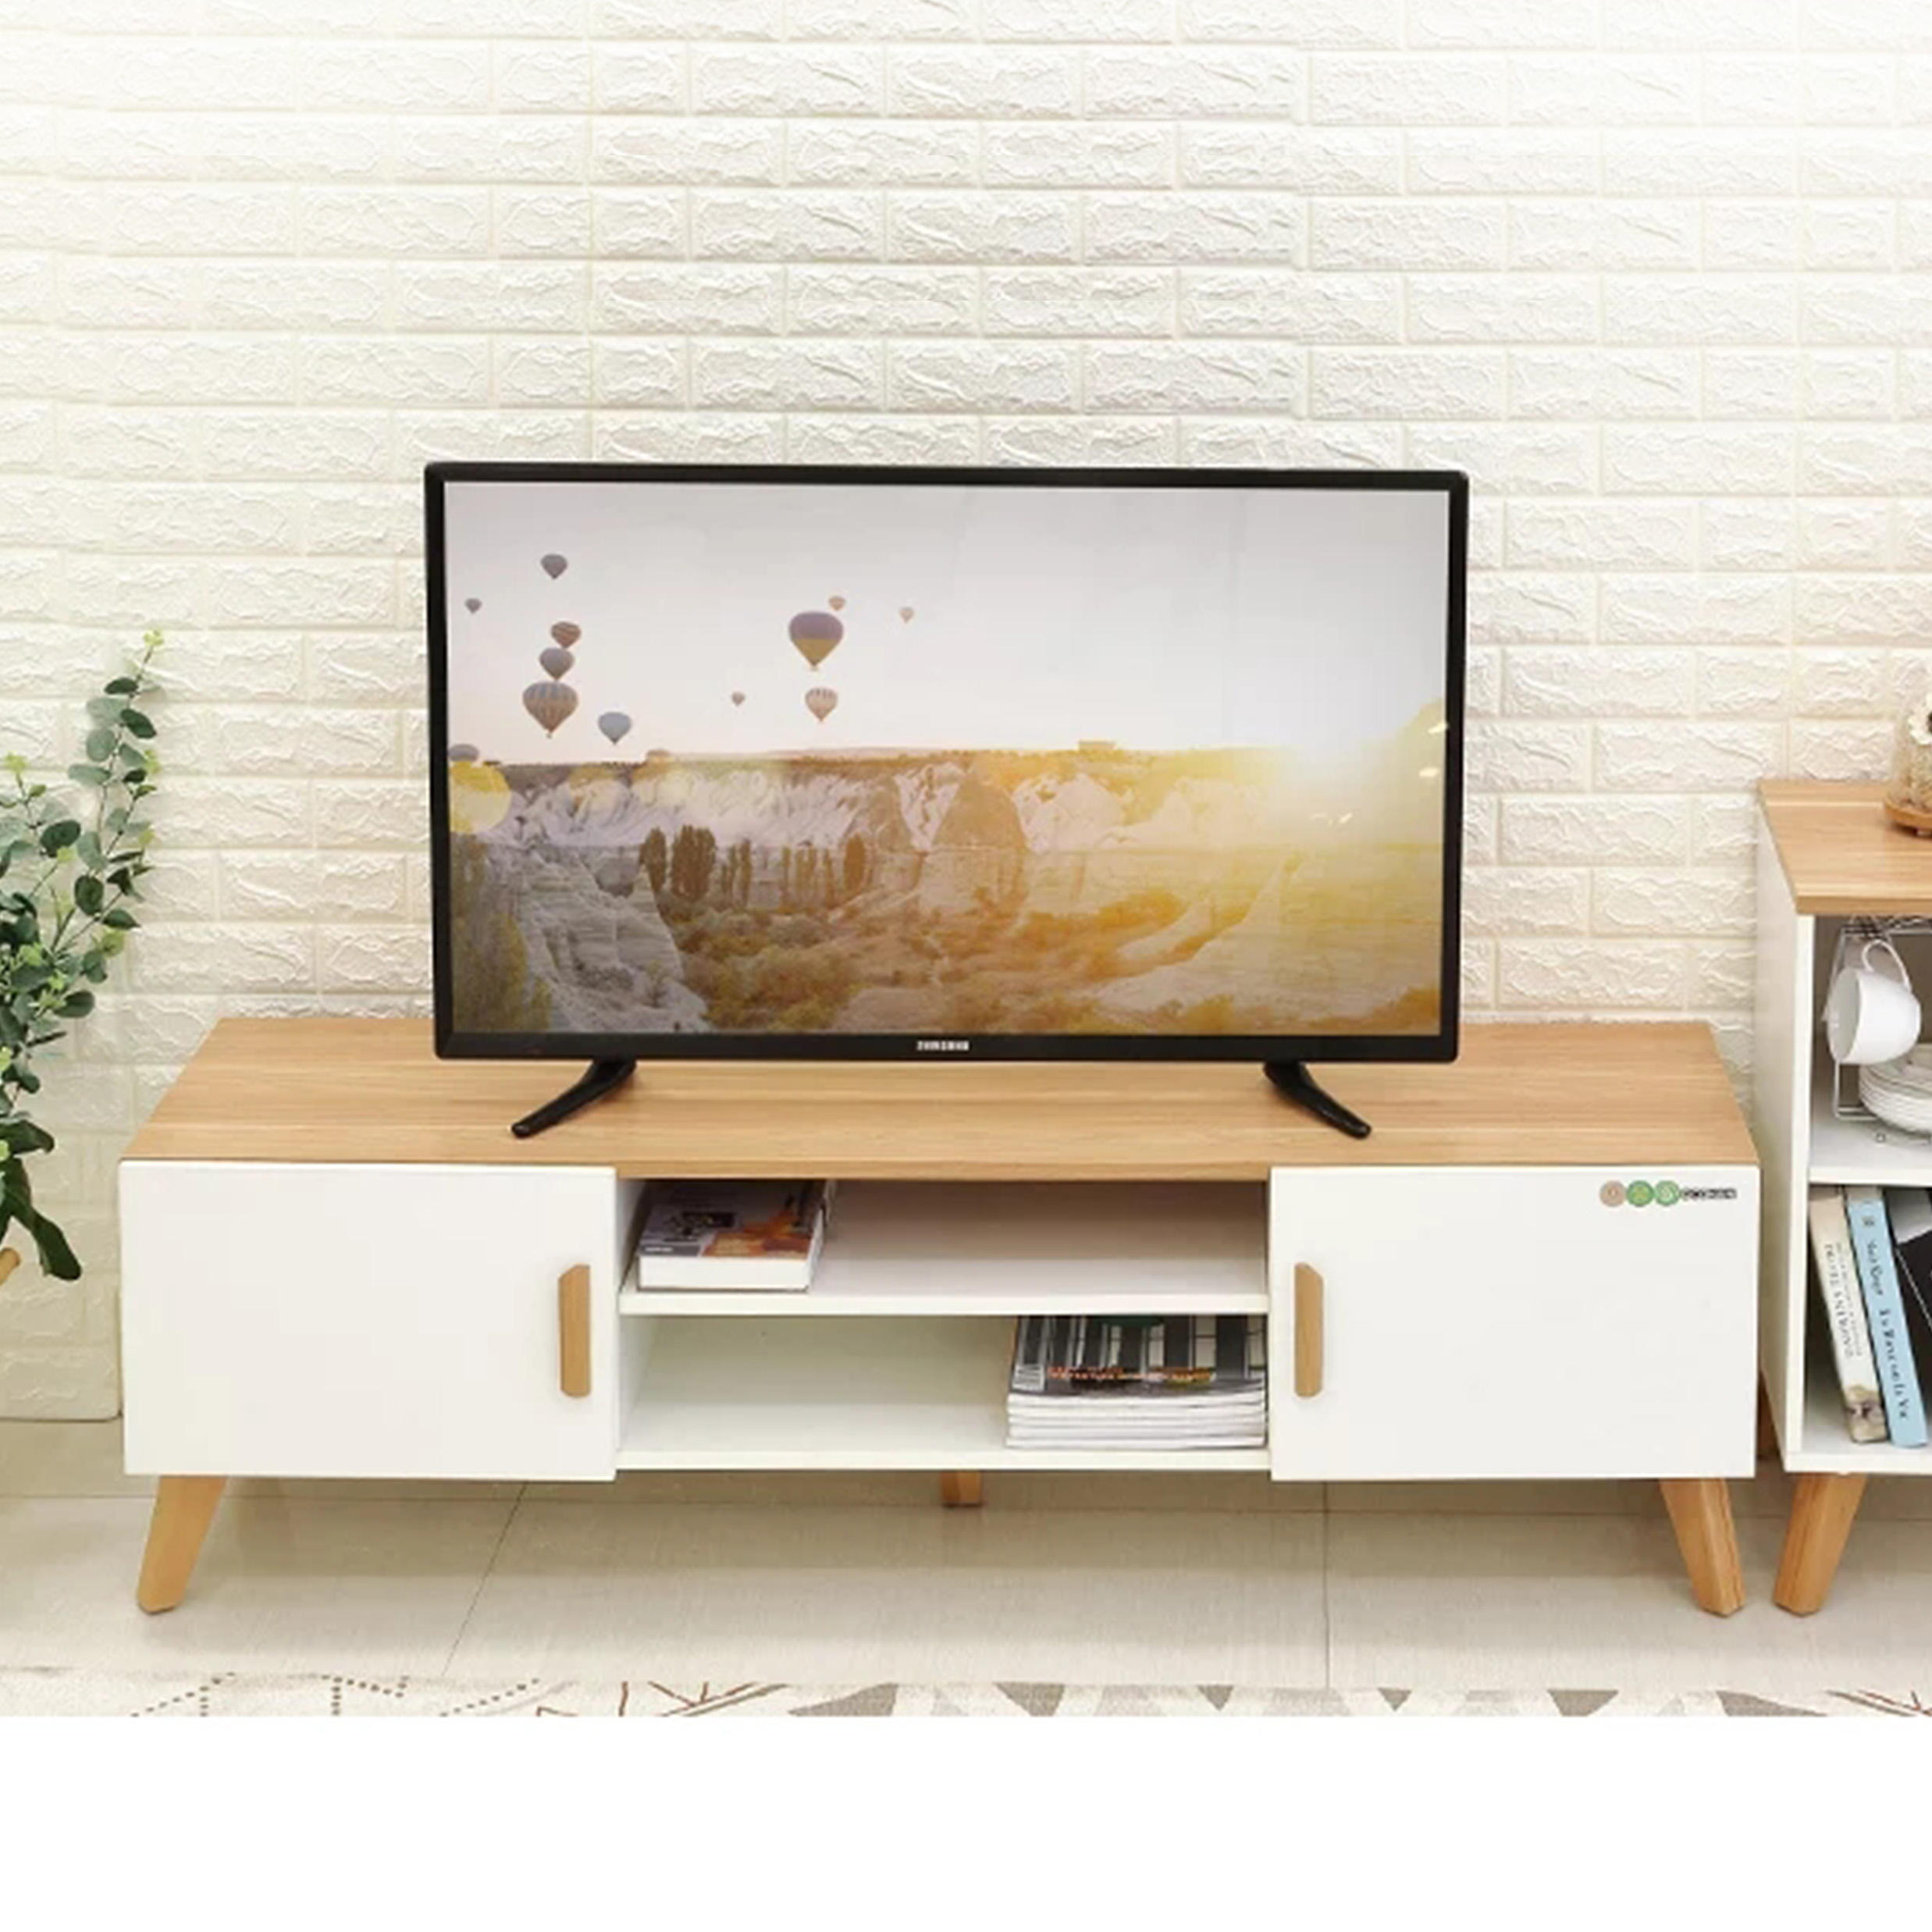 Northern europe style modern living room white wooden TV stand with 2 doors